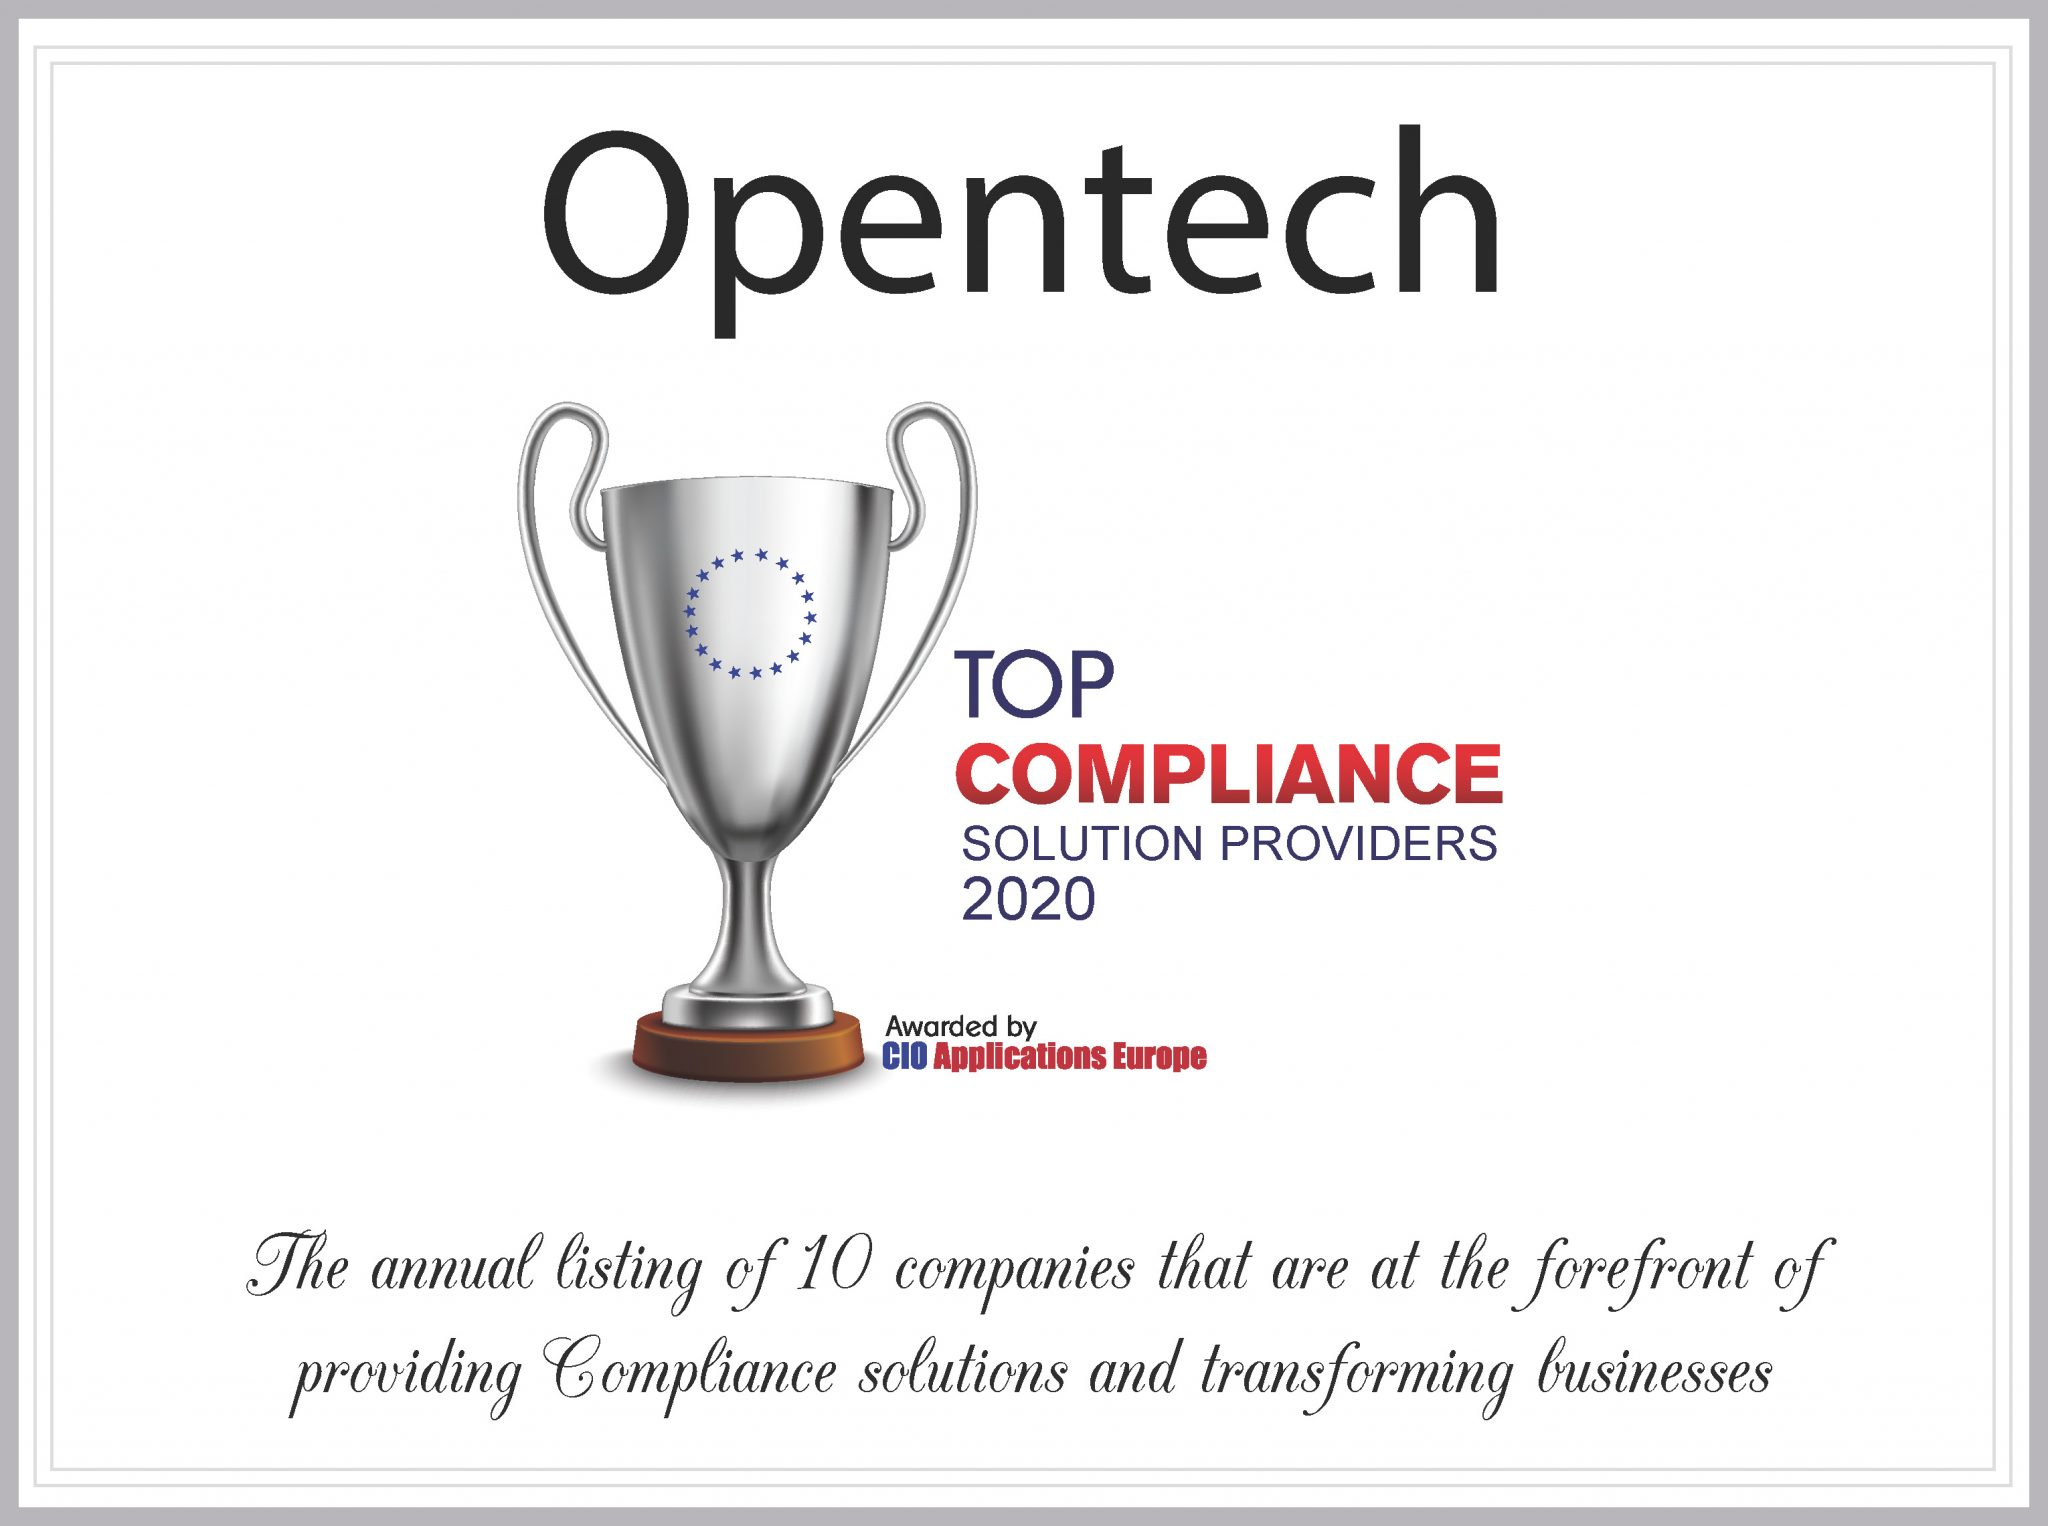 Opentech Top 10 Compliance Solution Providers 2020